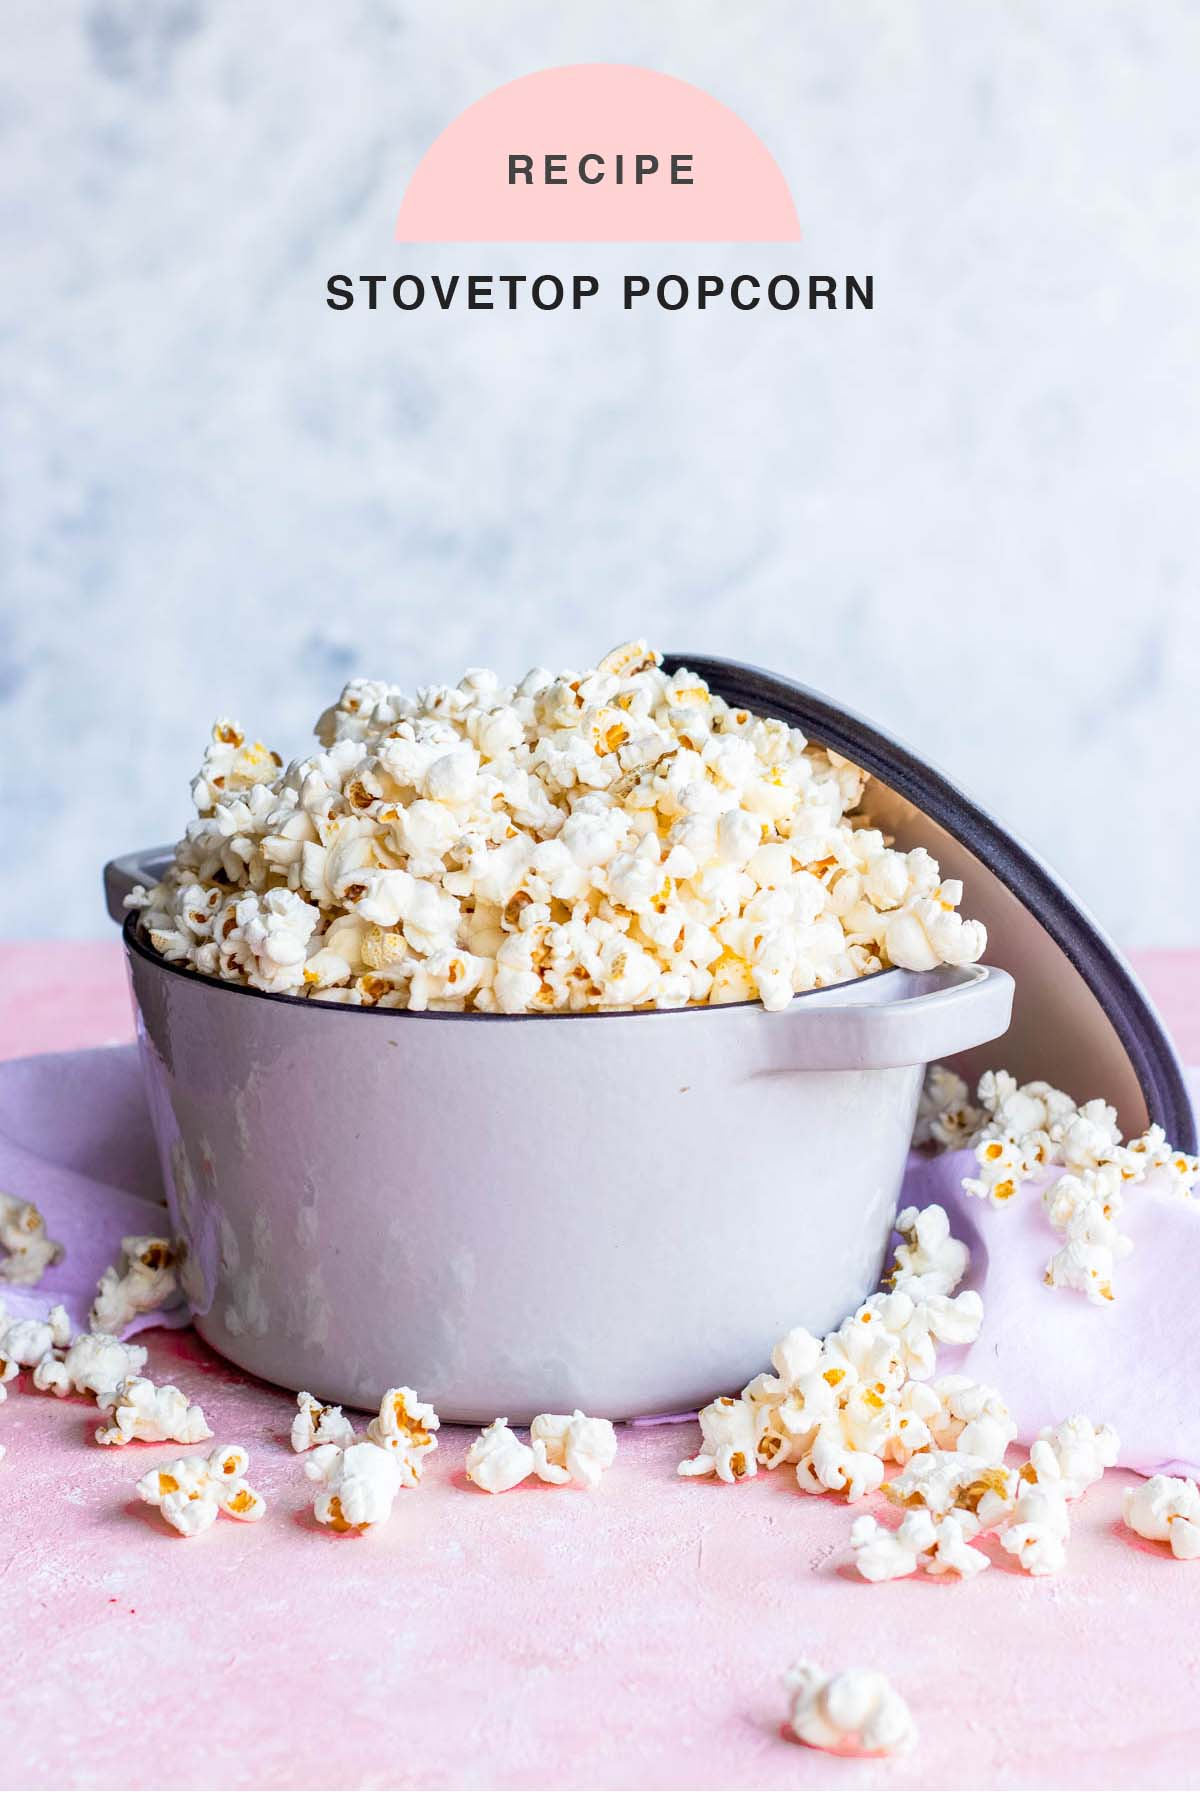 RECIPE Stovetop Popcorn healthy homemade snack Ashley Rose of Sugar & Cloth blog